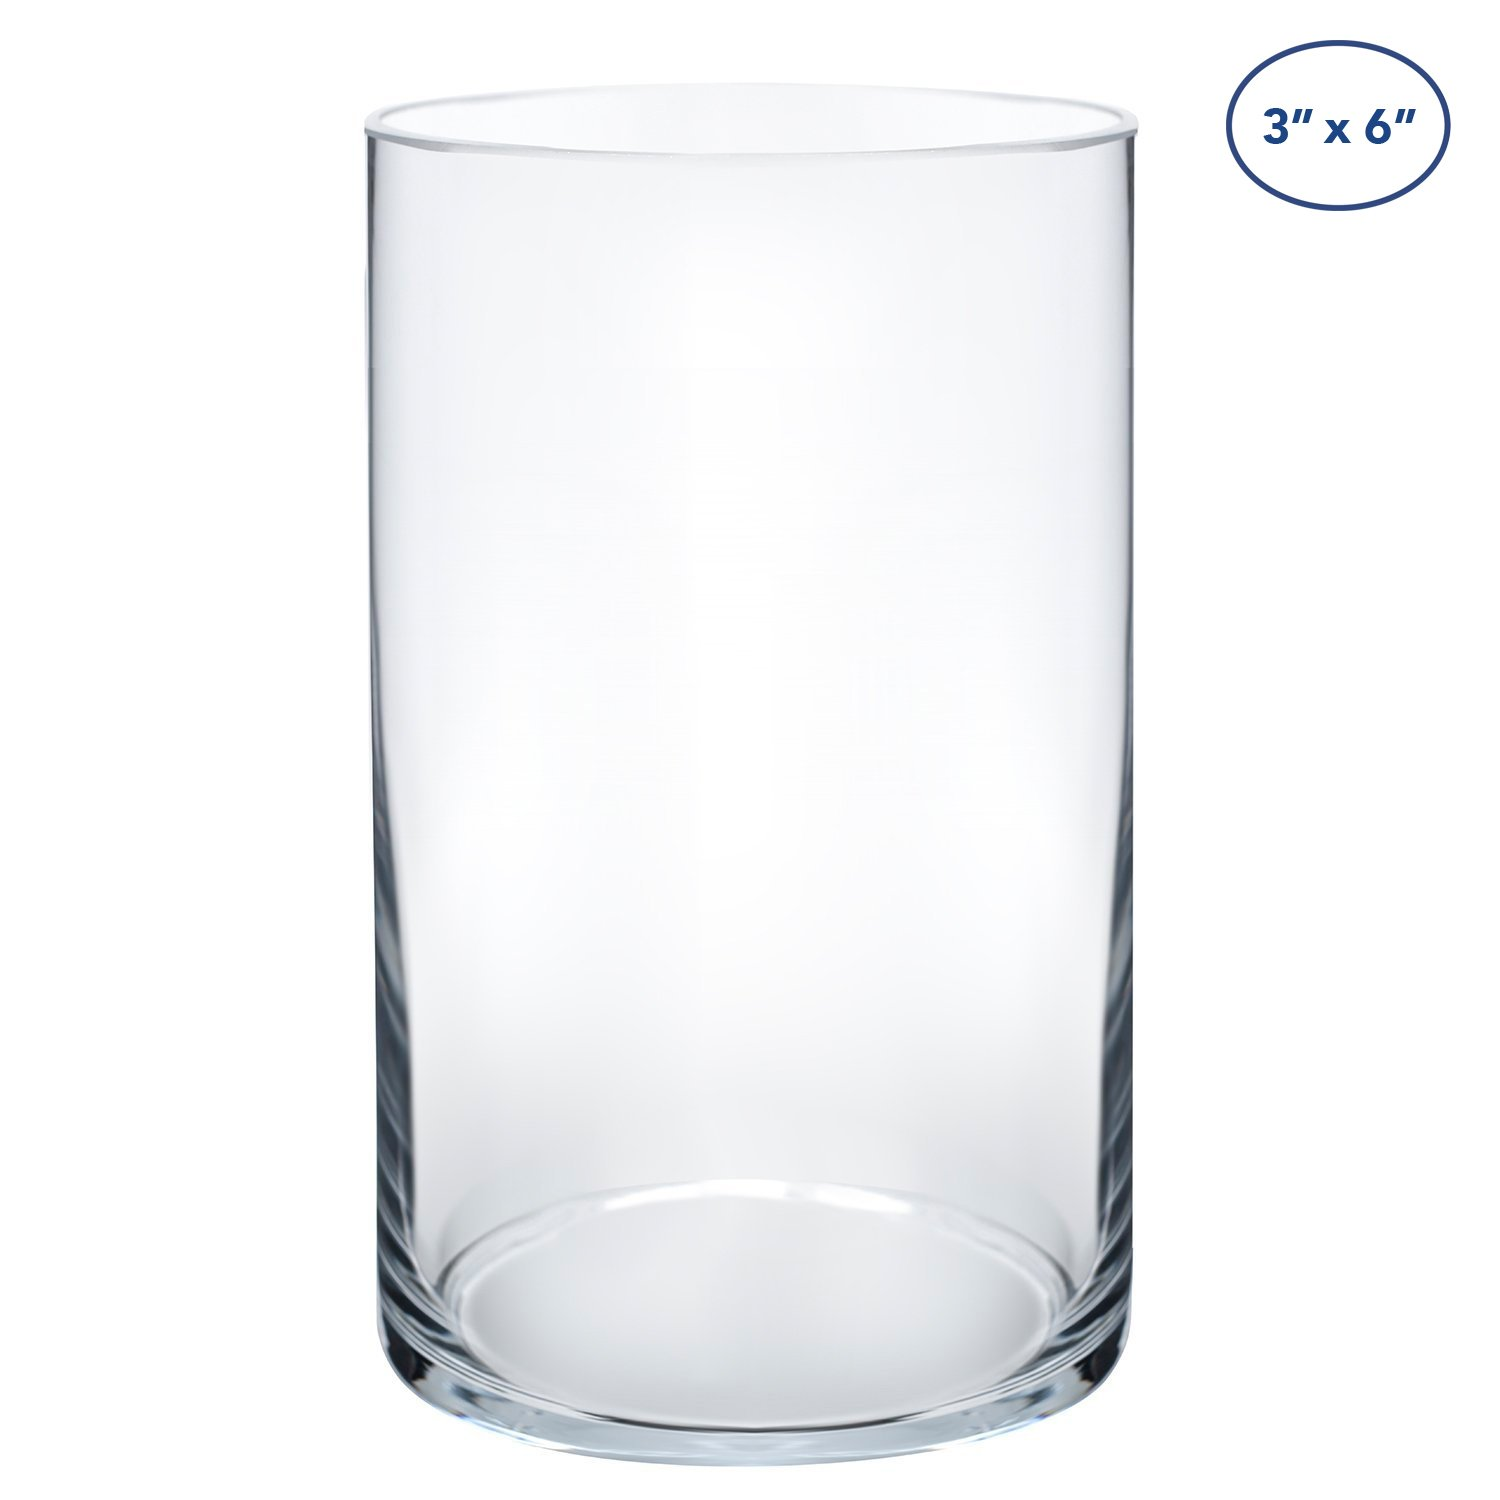 Royal Imports Flower Glass Vase Decorative Centerpiece For Home or Wedding by Cylinder Shape, 6'' Tall, 3.5'' Opening, Clear by Royal Imports